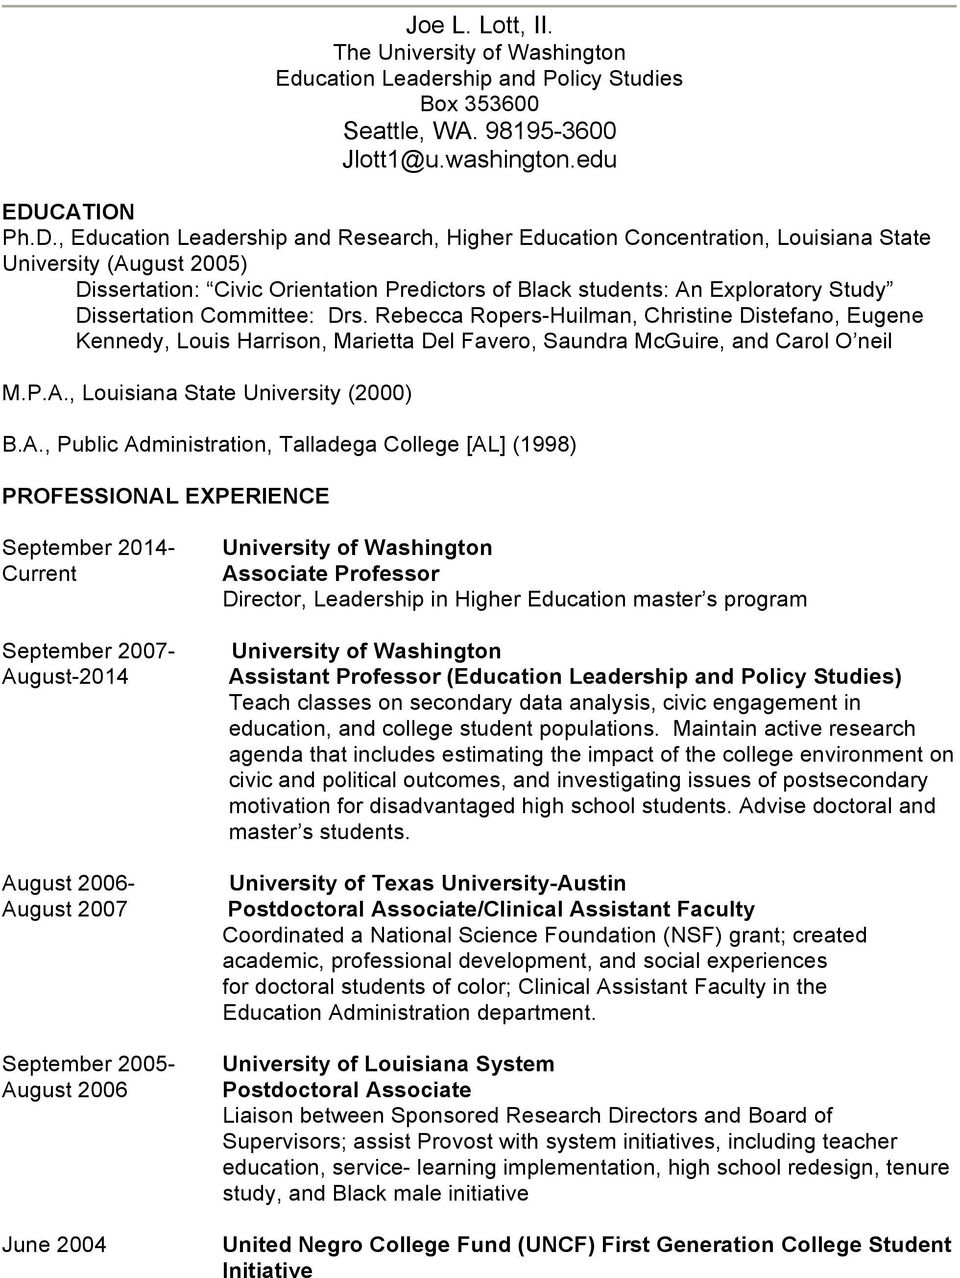 , Educatin Leadership and Research, Higher Educatin Cncentratin, Luisiana State University (August 2005) Dissertatin: Civic Orientatin Predictrs f Black students: An Explratry Study Dissertatin